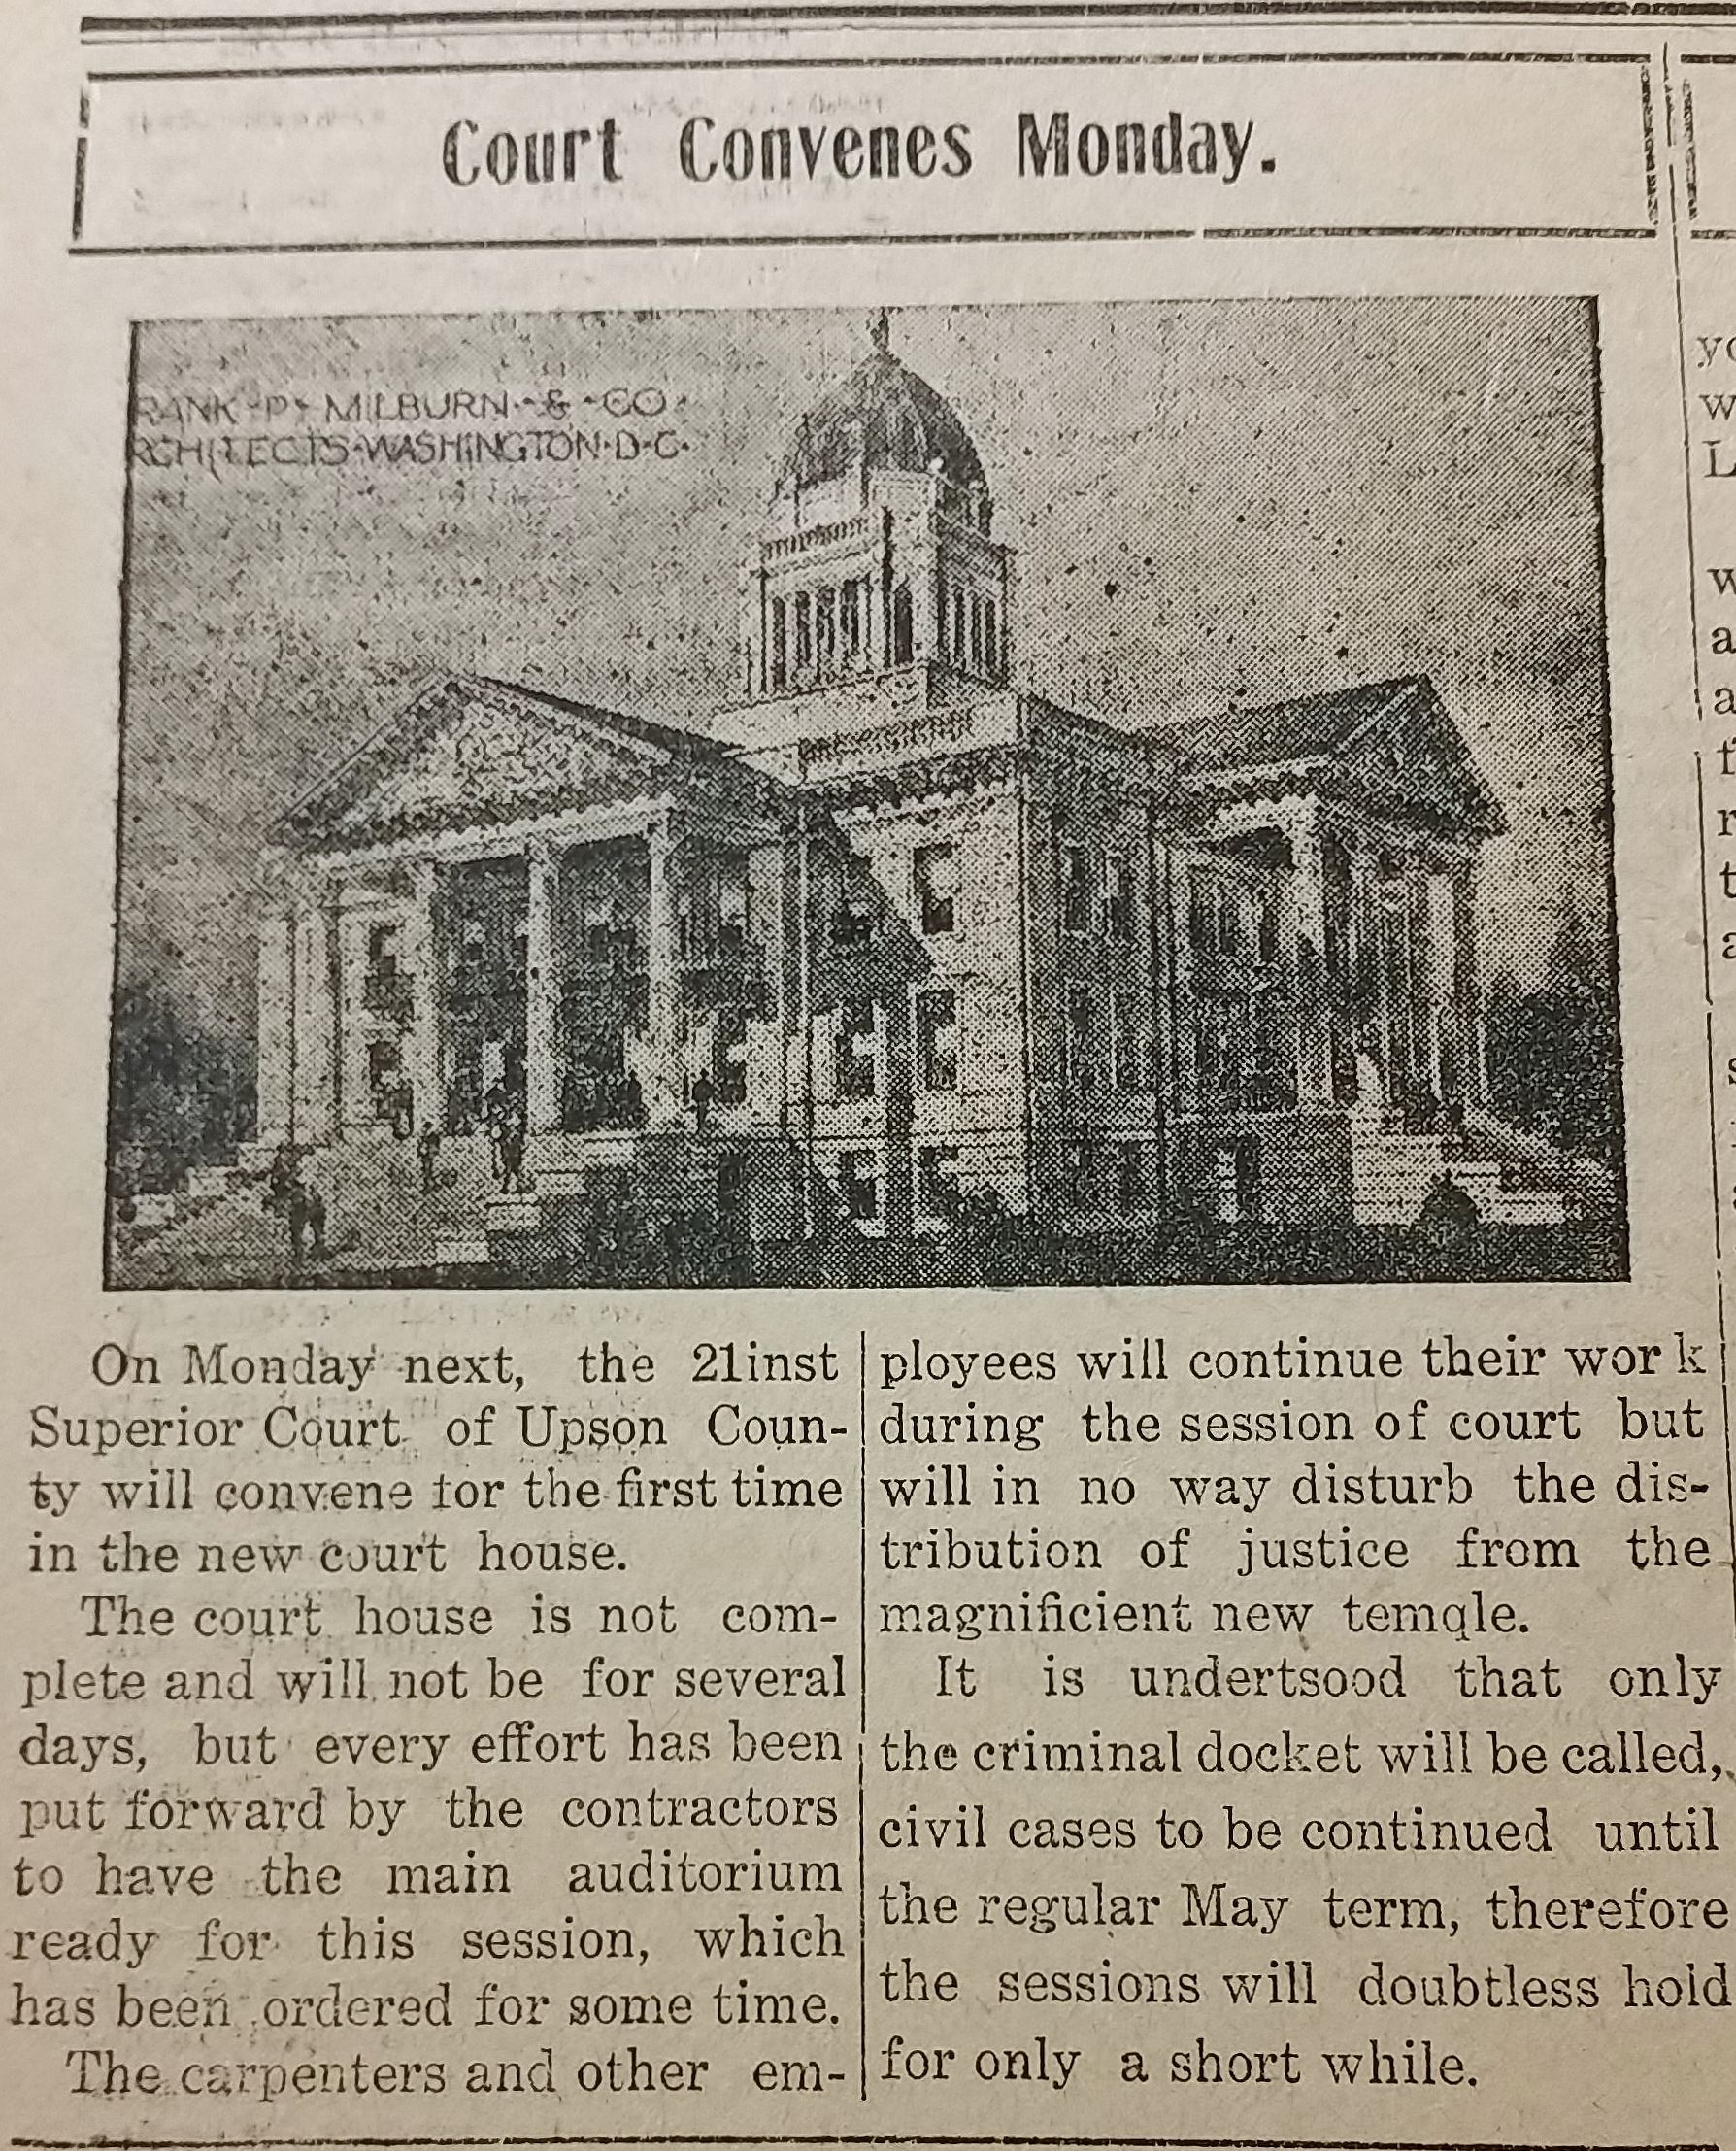 2018-12-21-Courthouse3opens-TT-1908-12-18